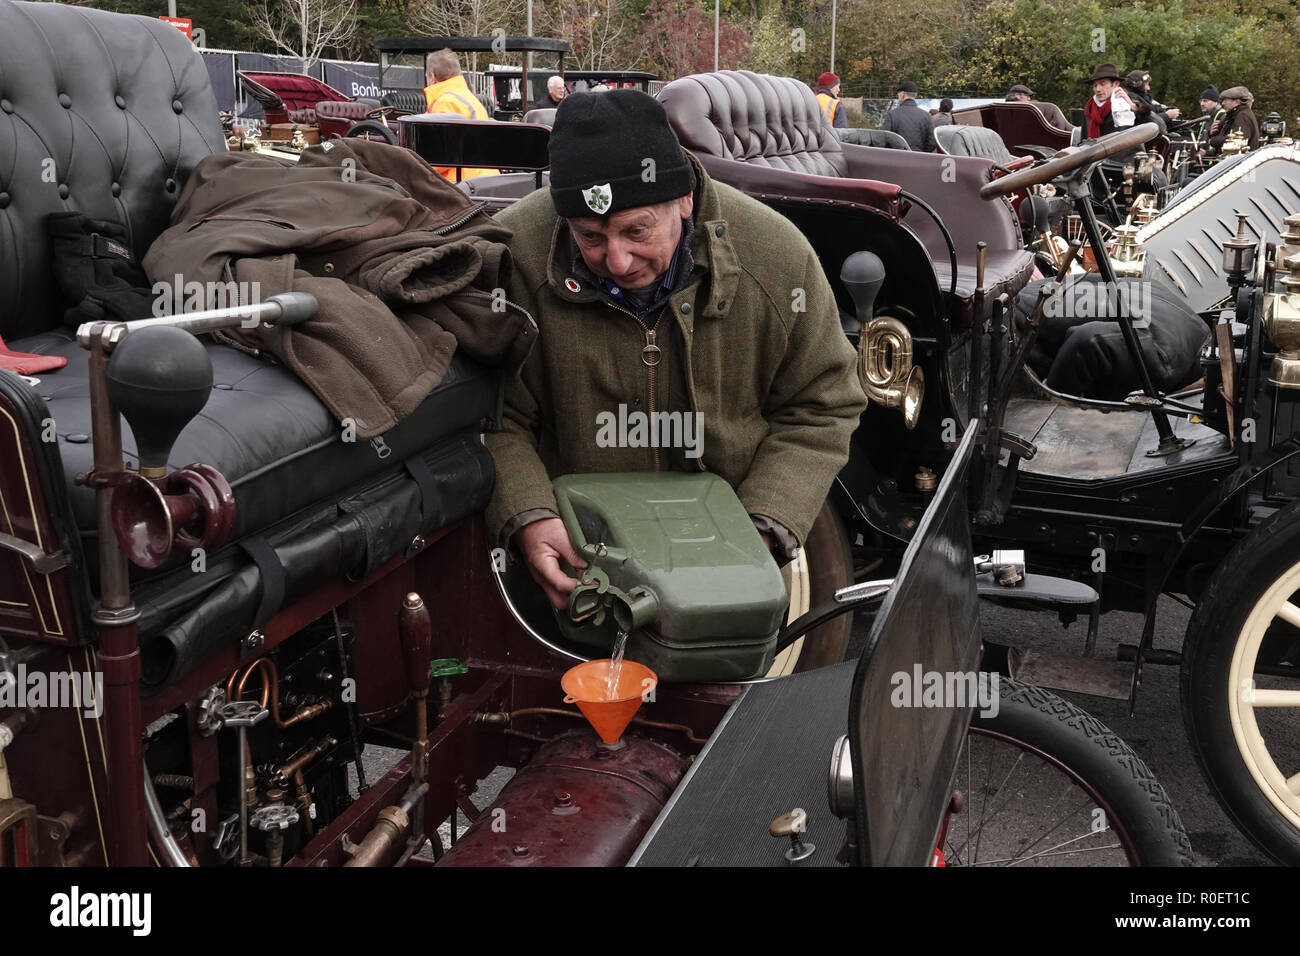 Crawley, West Sussex, UK. 4th November, 2018  Crawley, West Sussex,  UK  Veteran automobile enthusiast refuels his veteran motor at the halfway stage where cars stopped at the Honda garage in Crawley on the Bonhams sponsored London to Brighton Veteran car run halfway stop at the Honda showroom in Crawley, Credit: Motofoto/Alamy Live News - Stock Image